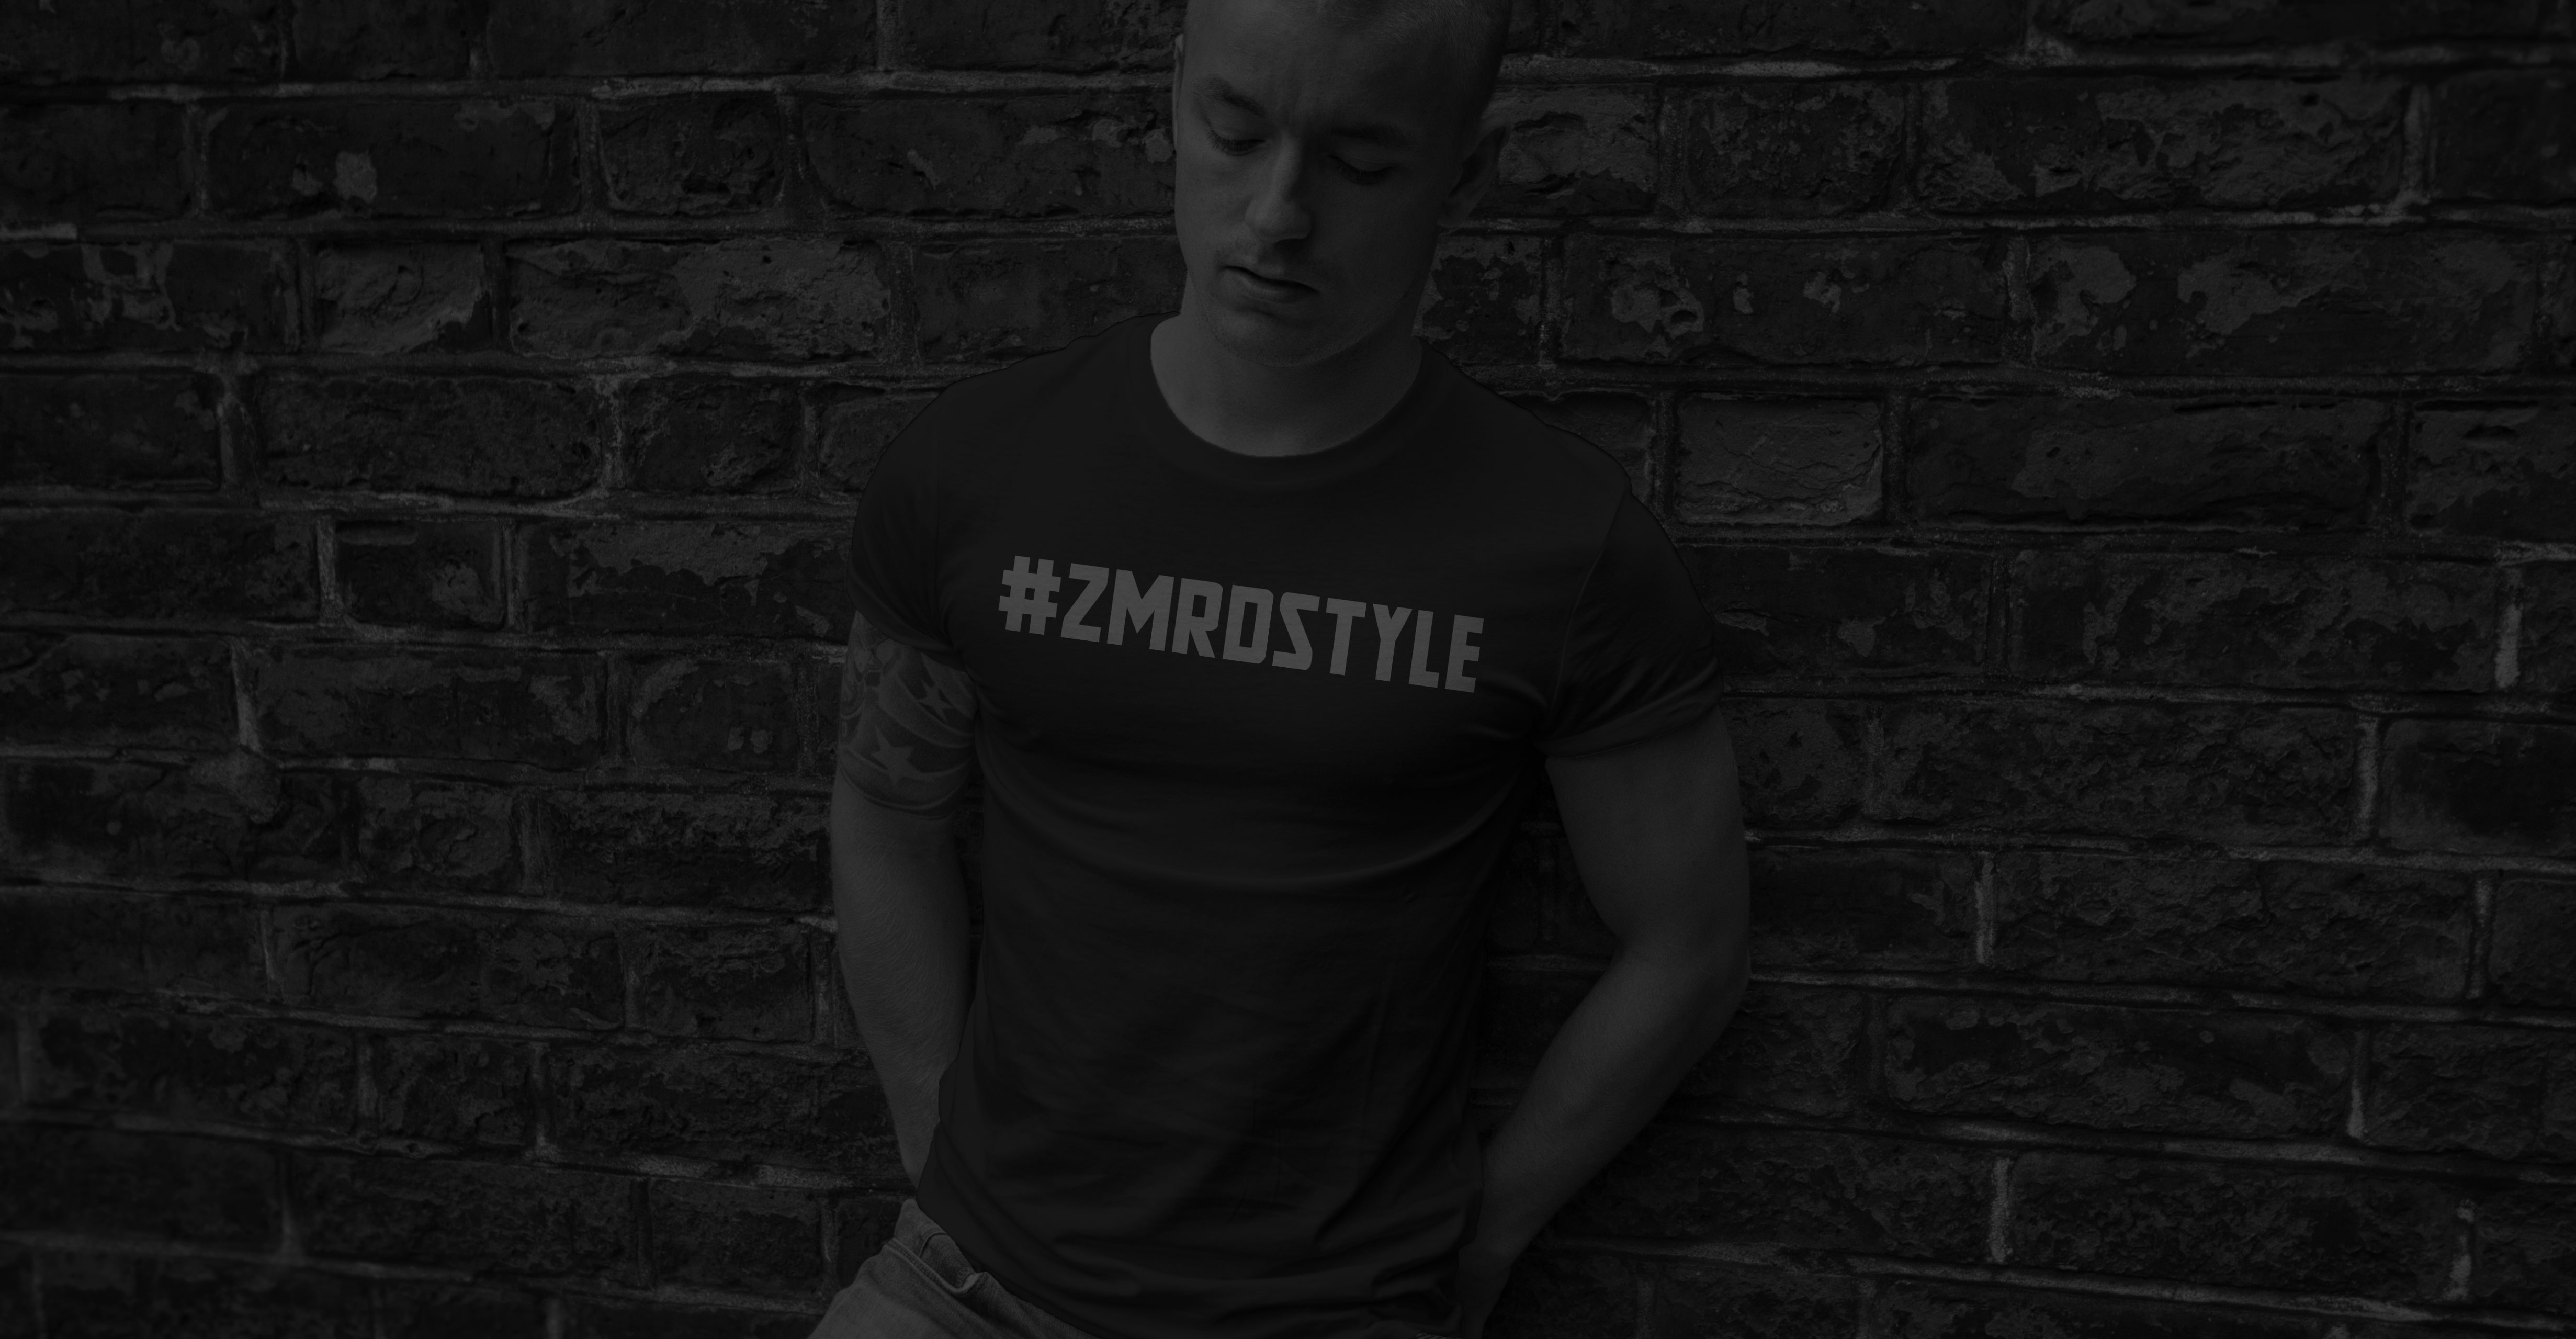 ZMRDSTYLE